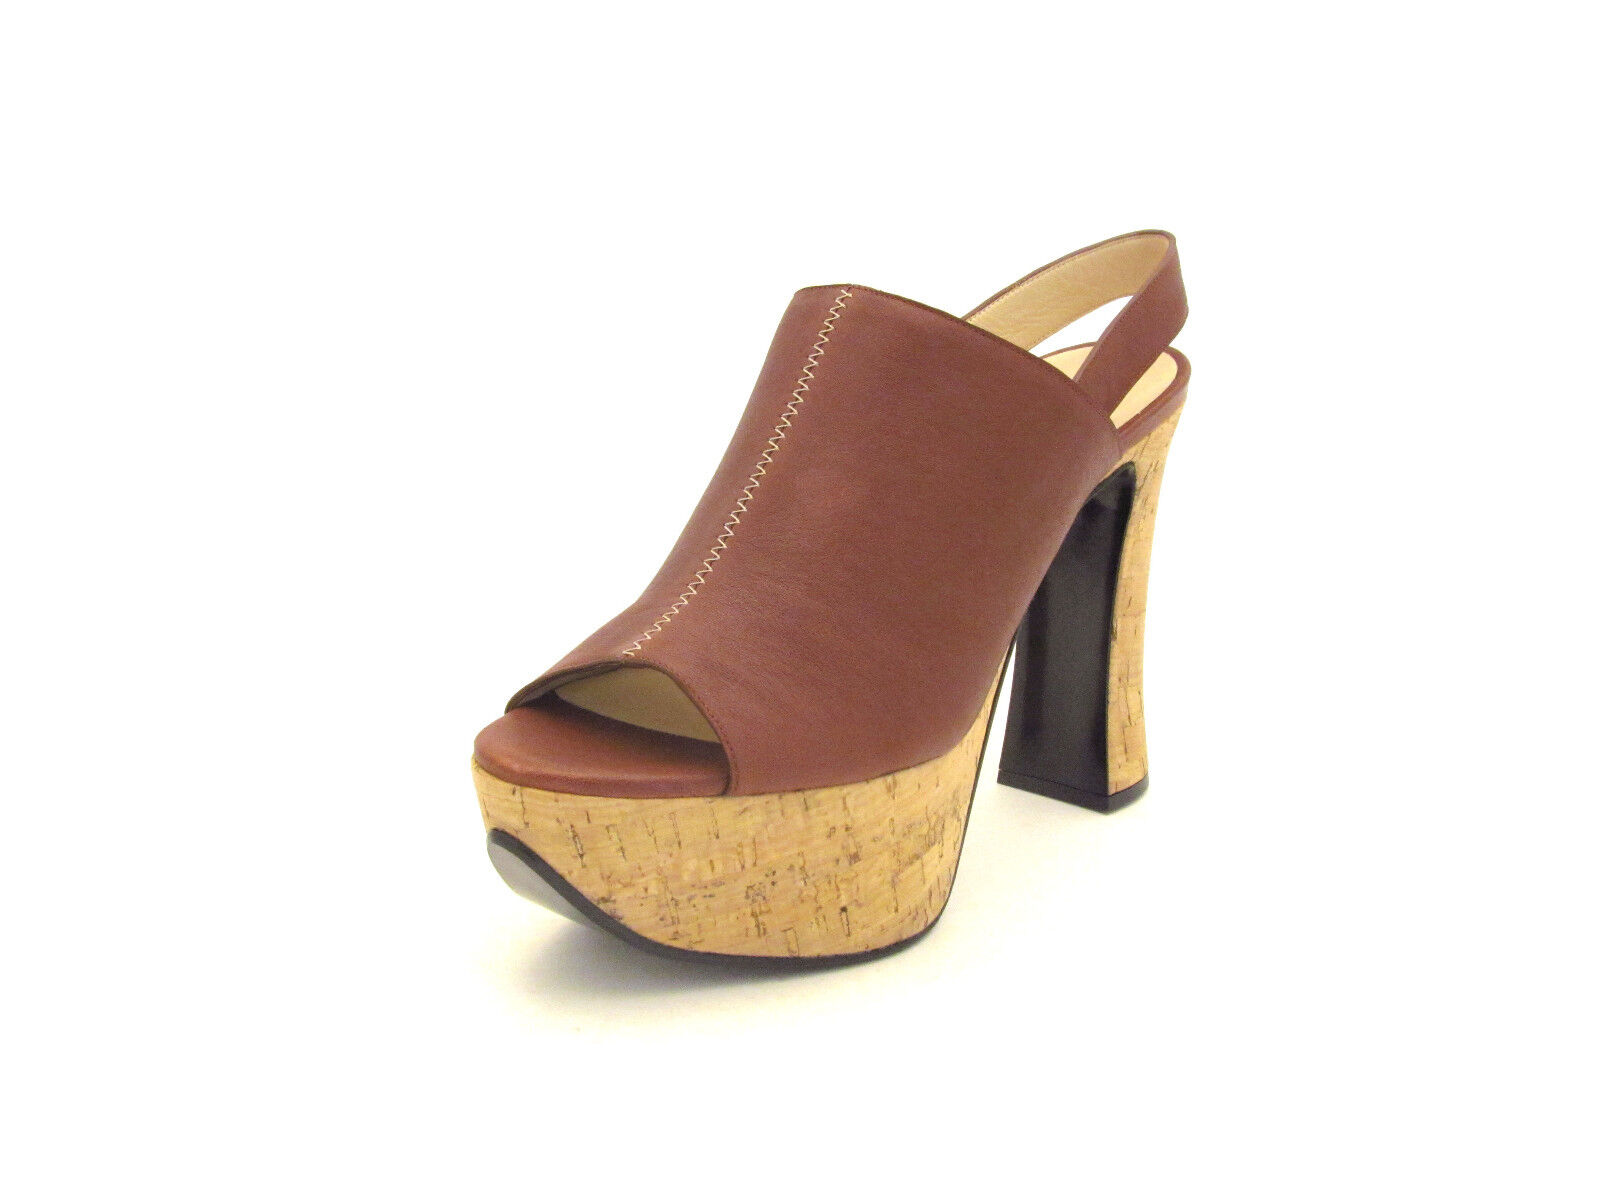 New Chloe Alice Leather Cork Platform Slingback Sandals in Brown 41EU Retail 670